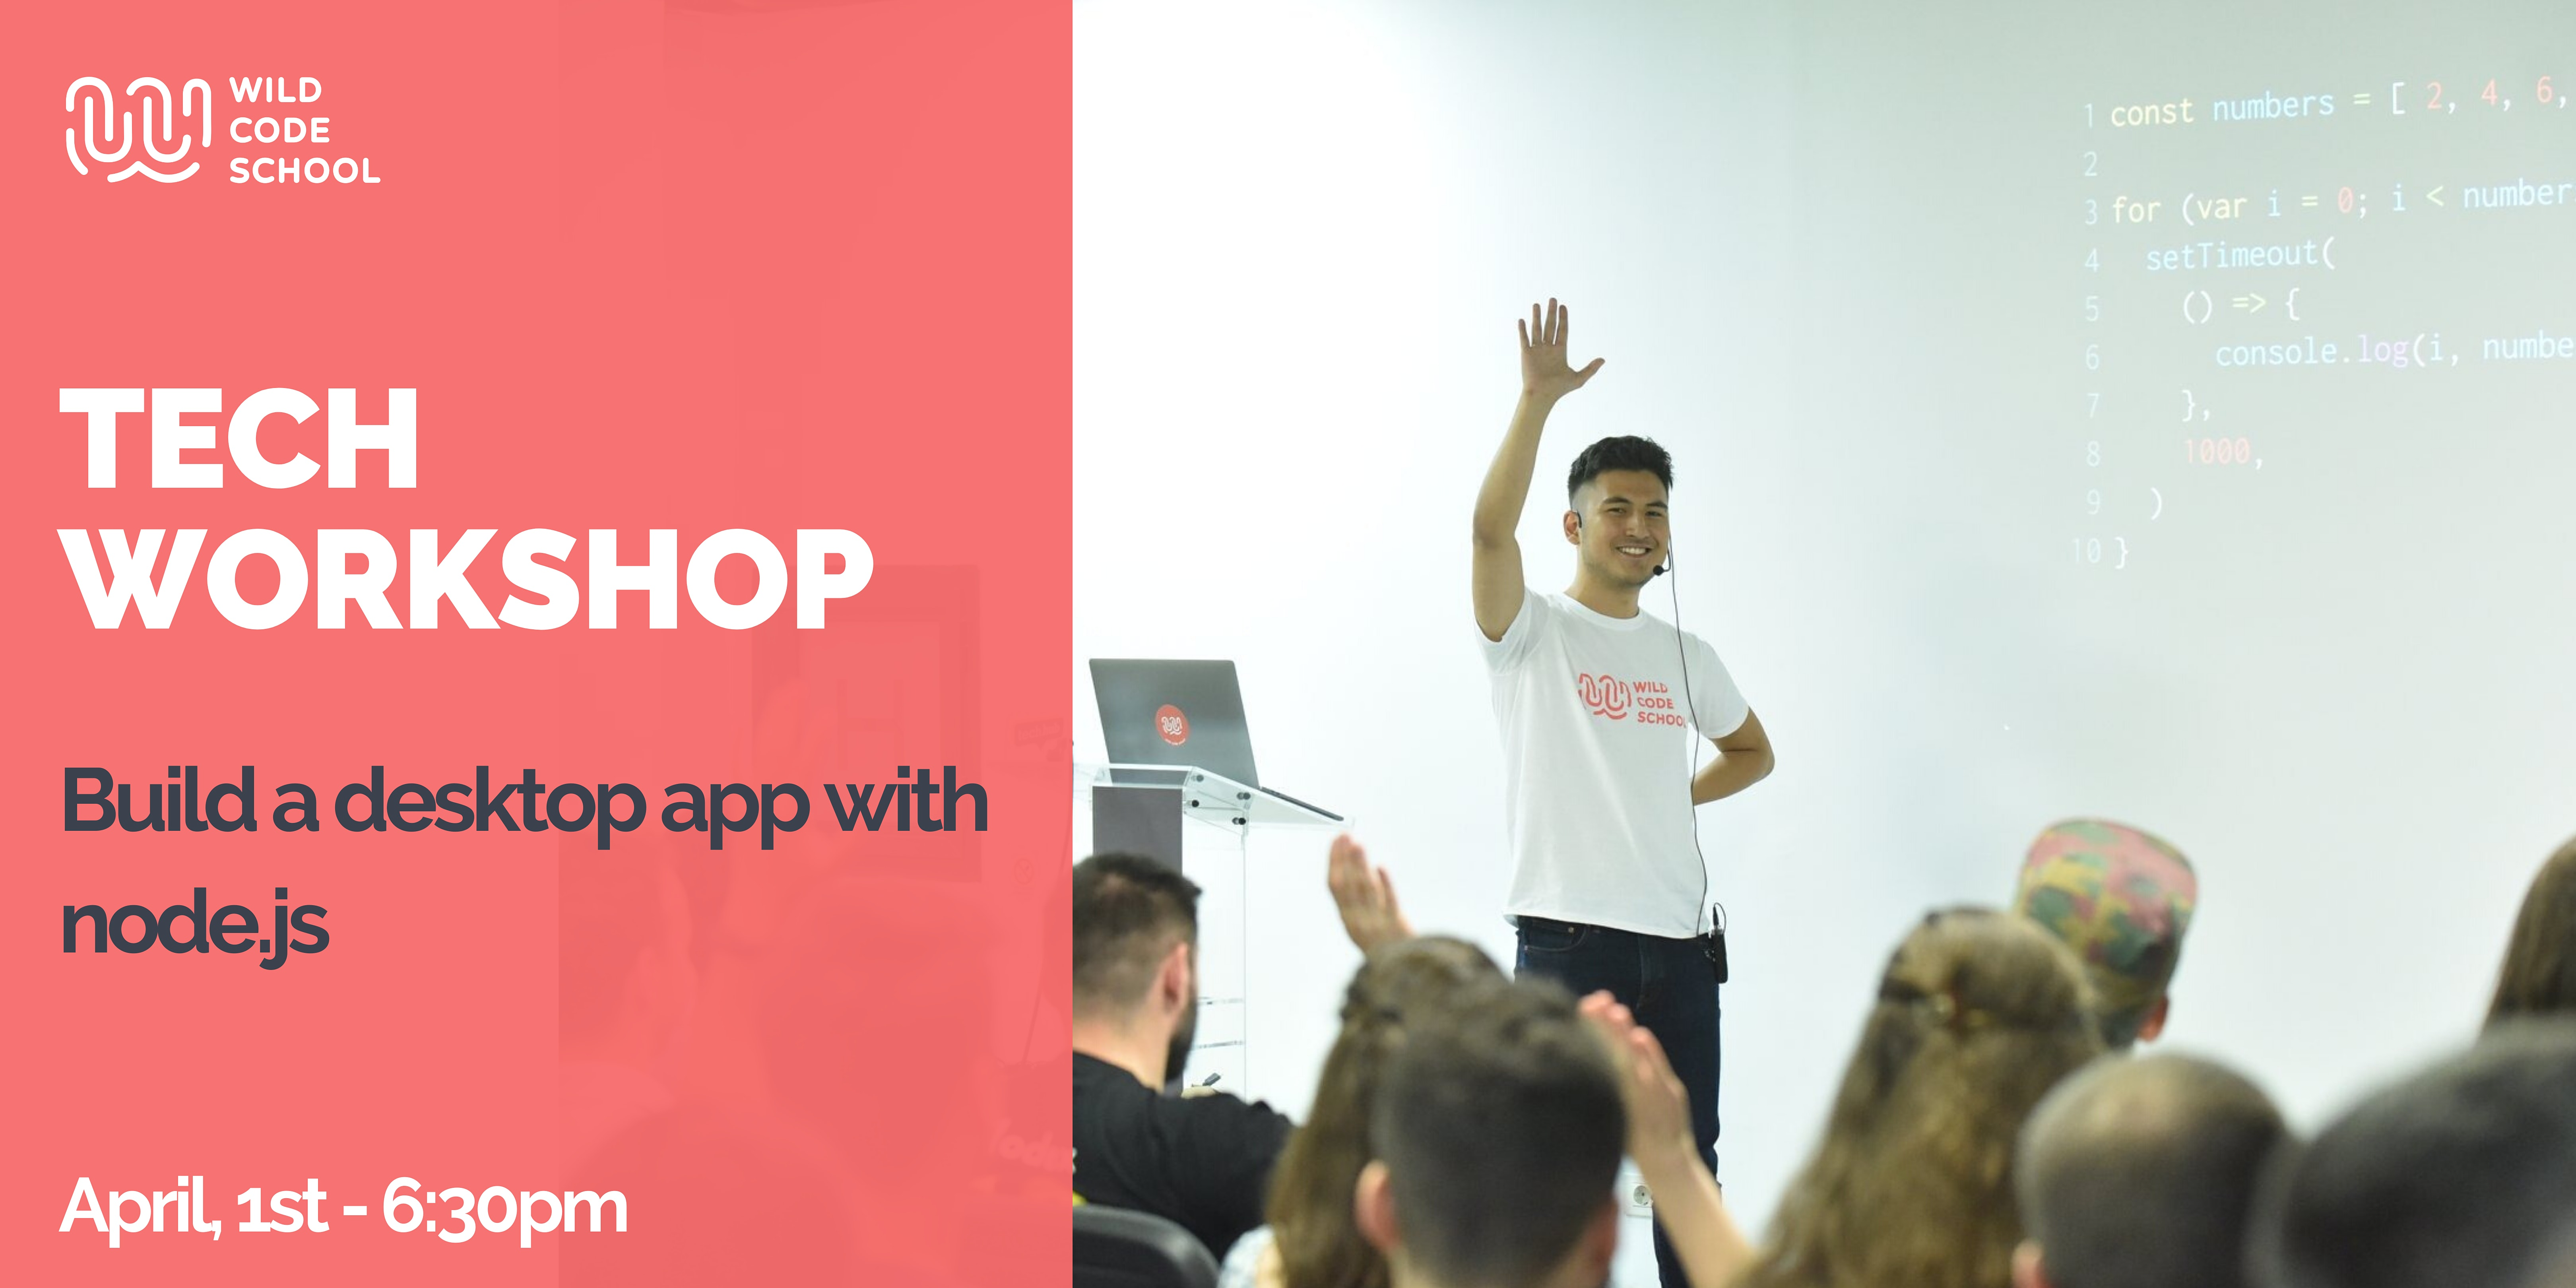 Tech Workshop - Build a desktop app with node.js